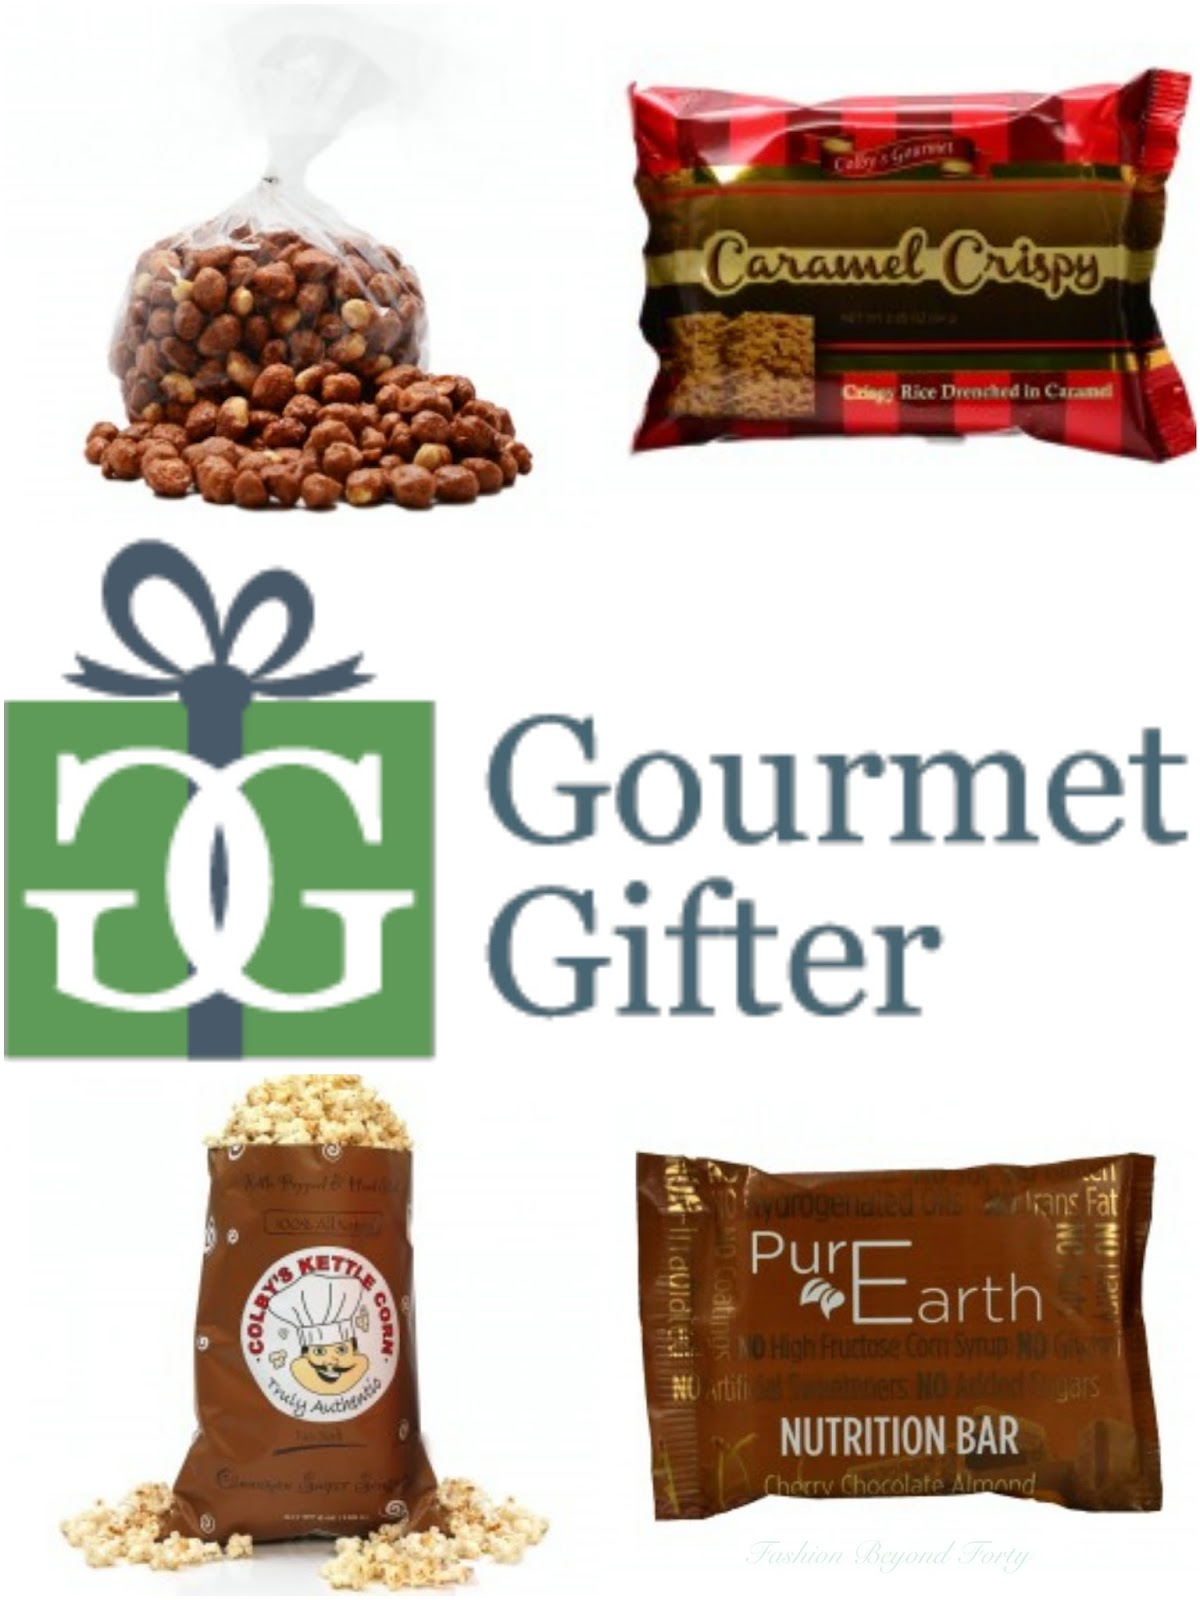 Yummy Treats from Gourmet Gifter